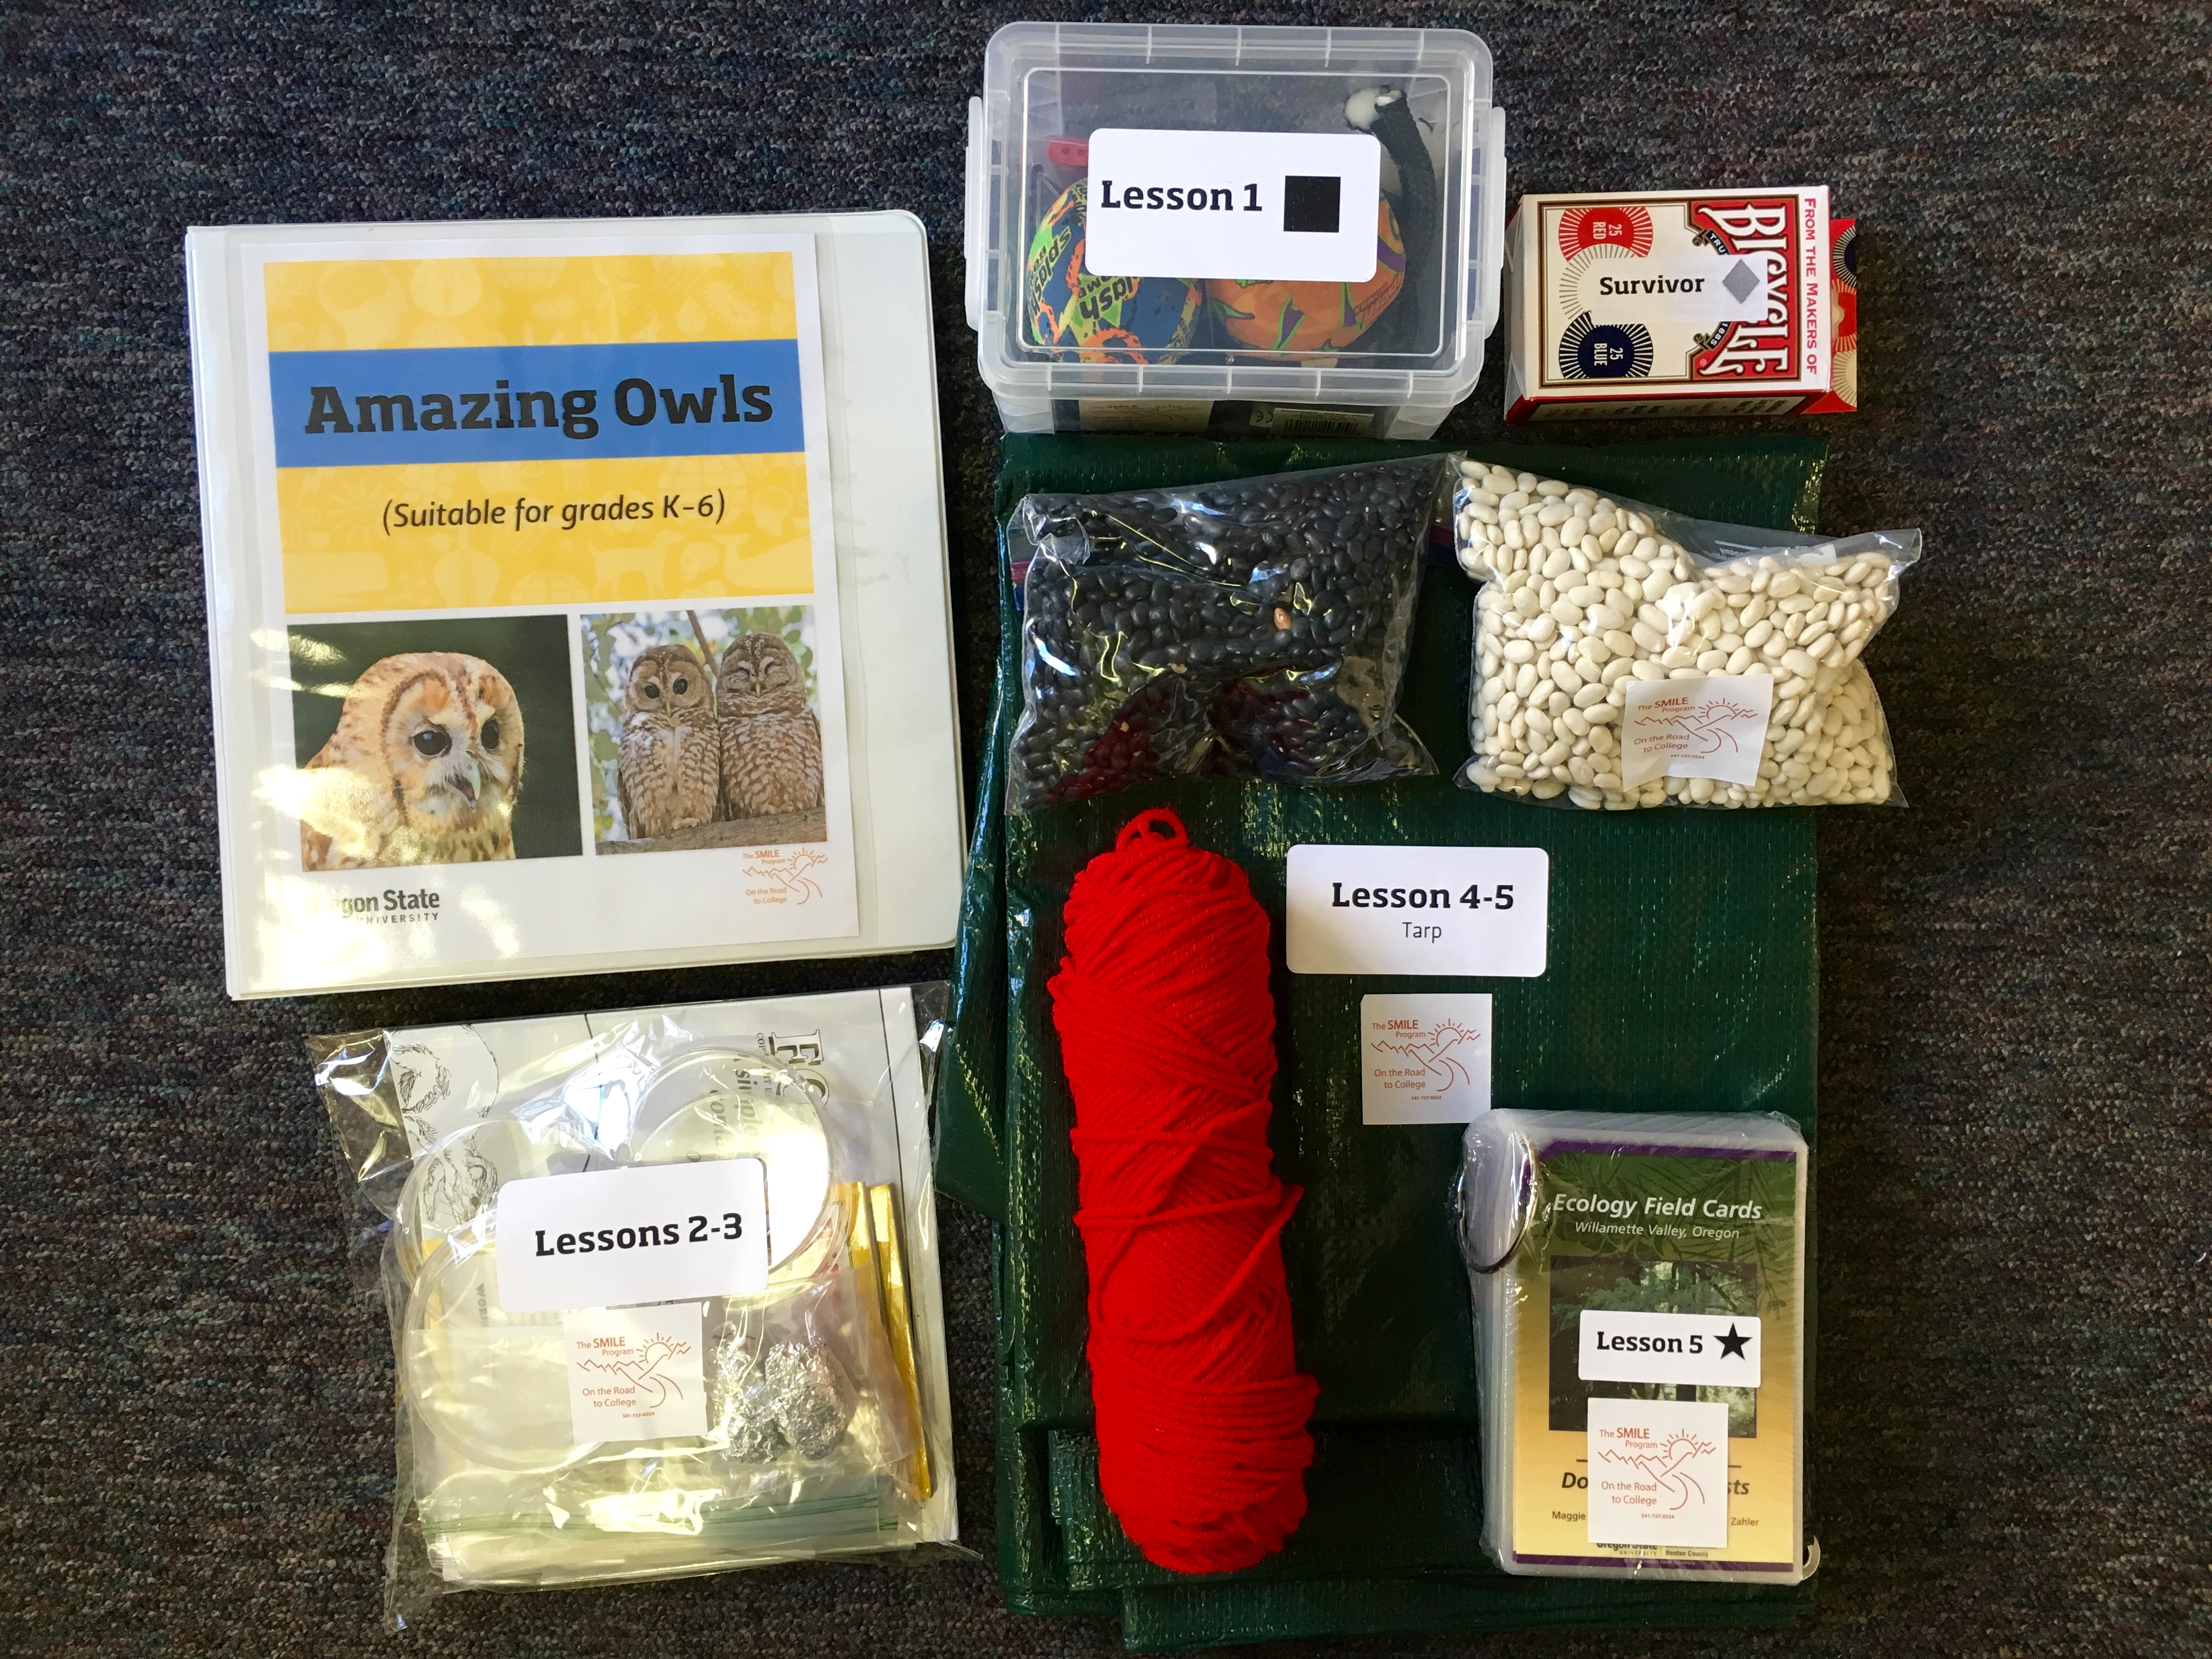 Contents of Amazing Owls Kit